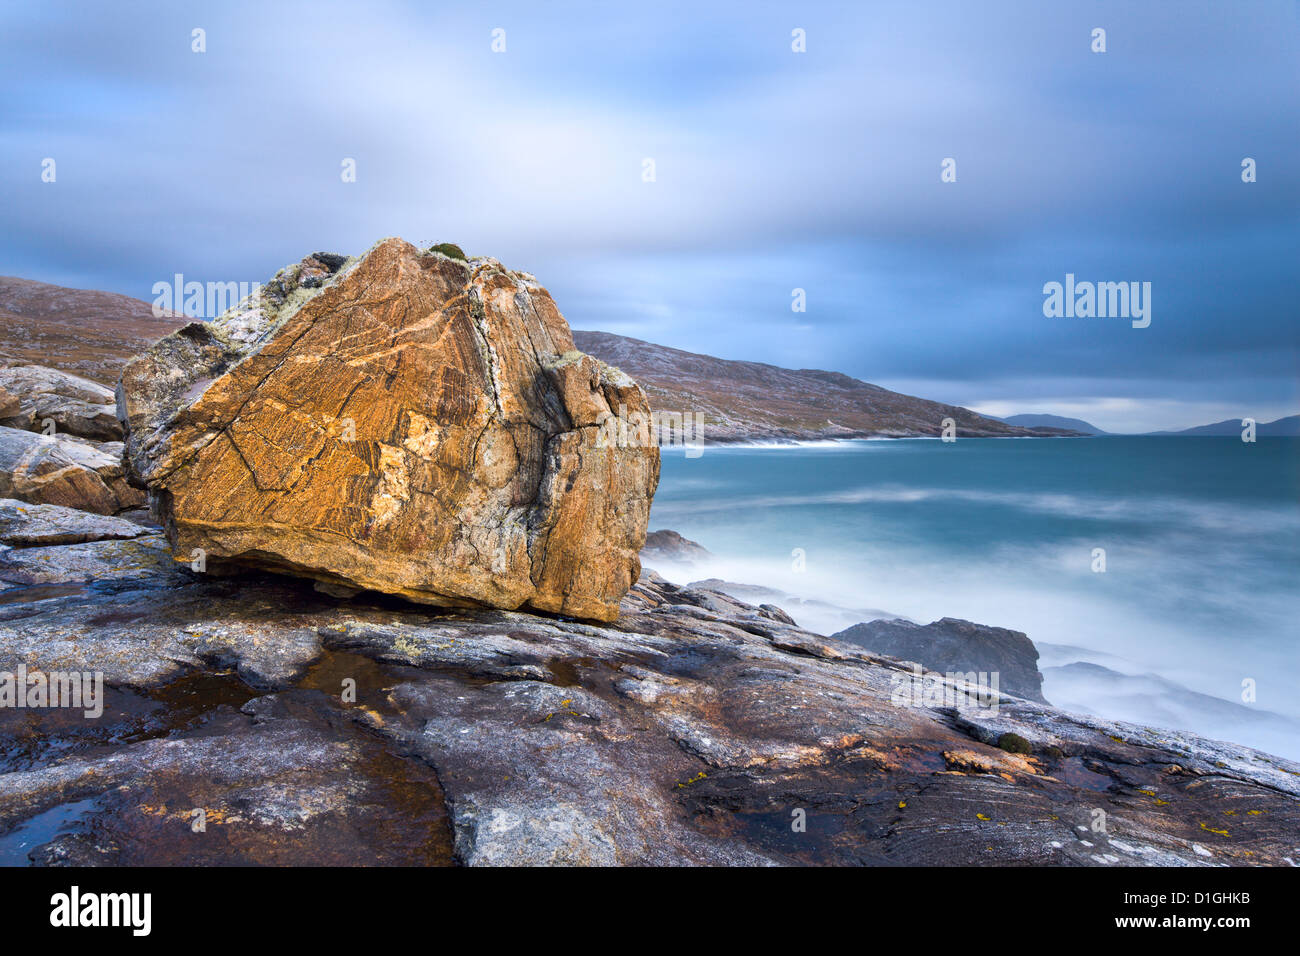 Giant Lewisian gneiss rock at Mealista on the south west coast of Lewis, Isle of Lewis, Outer Hebrides, Scotland - Stock Image